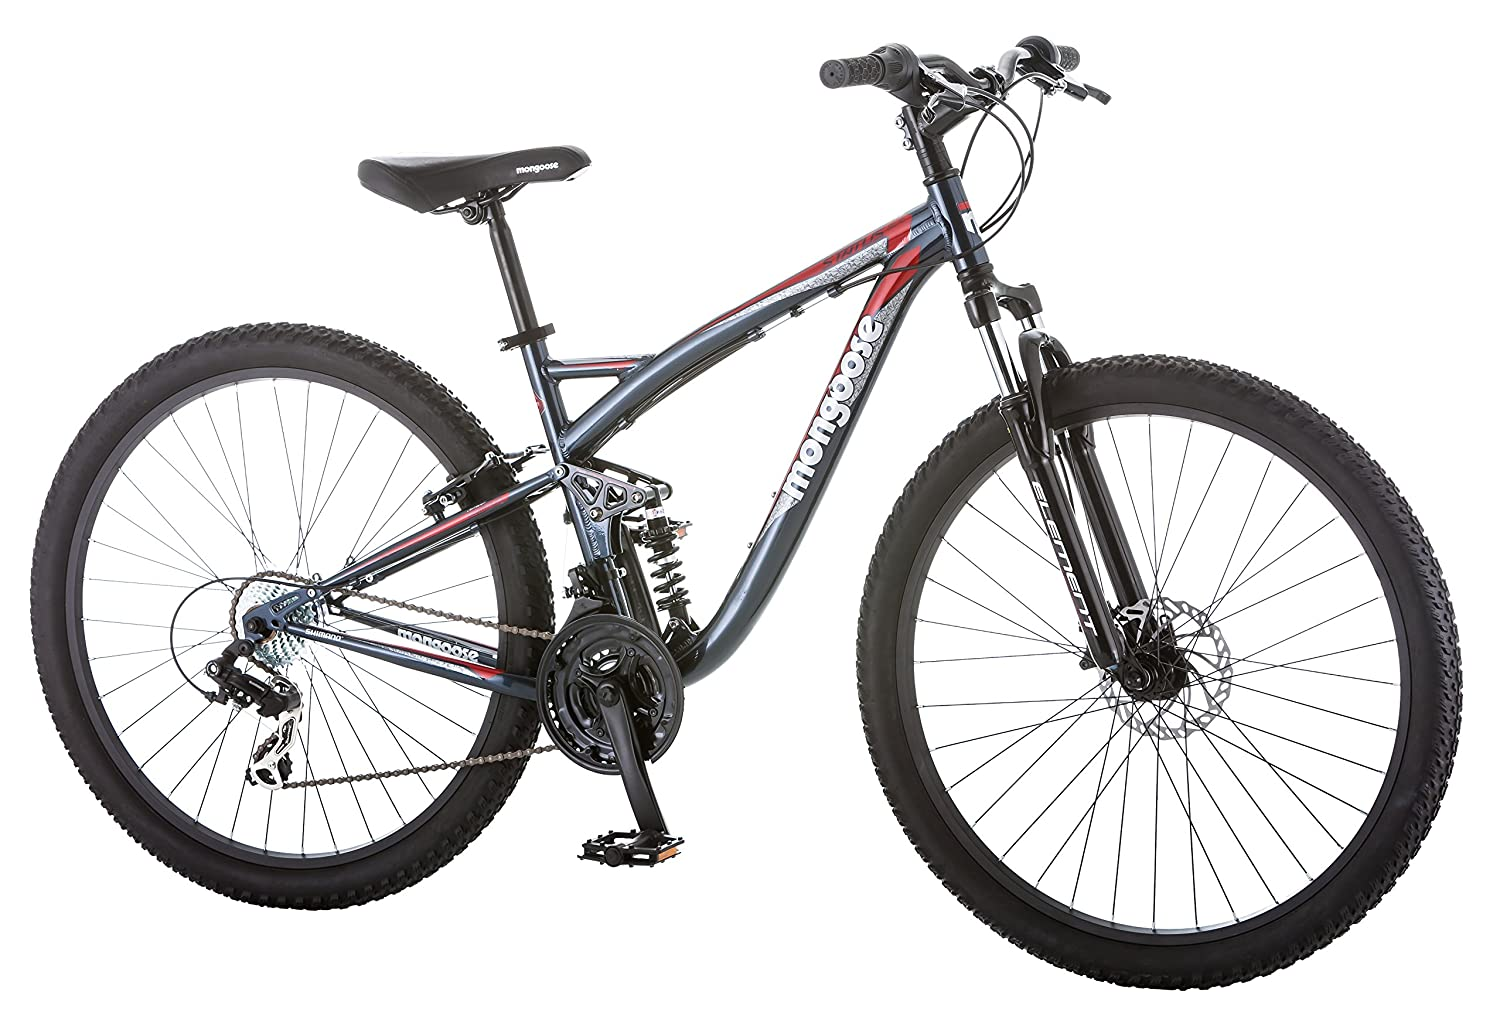 Mongoose Men s Status 2.4 27.5 Wheel Full Suspension Bicycle, Steel Blue, 18 Medium Frame Size